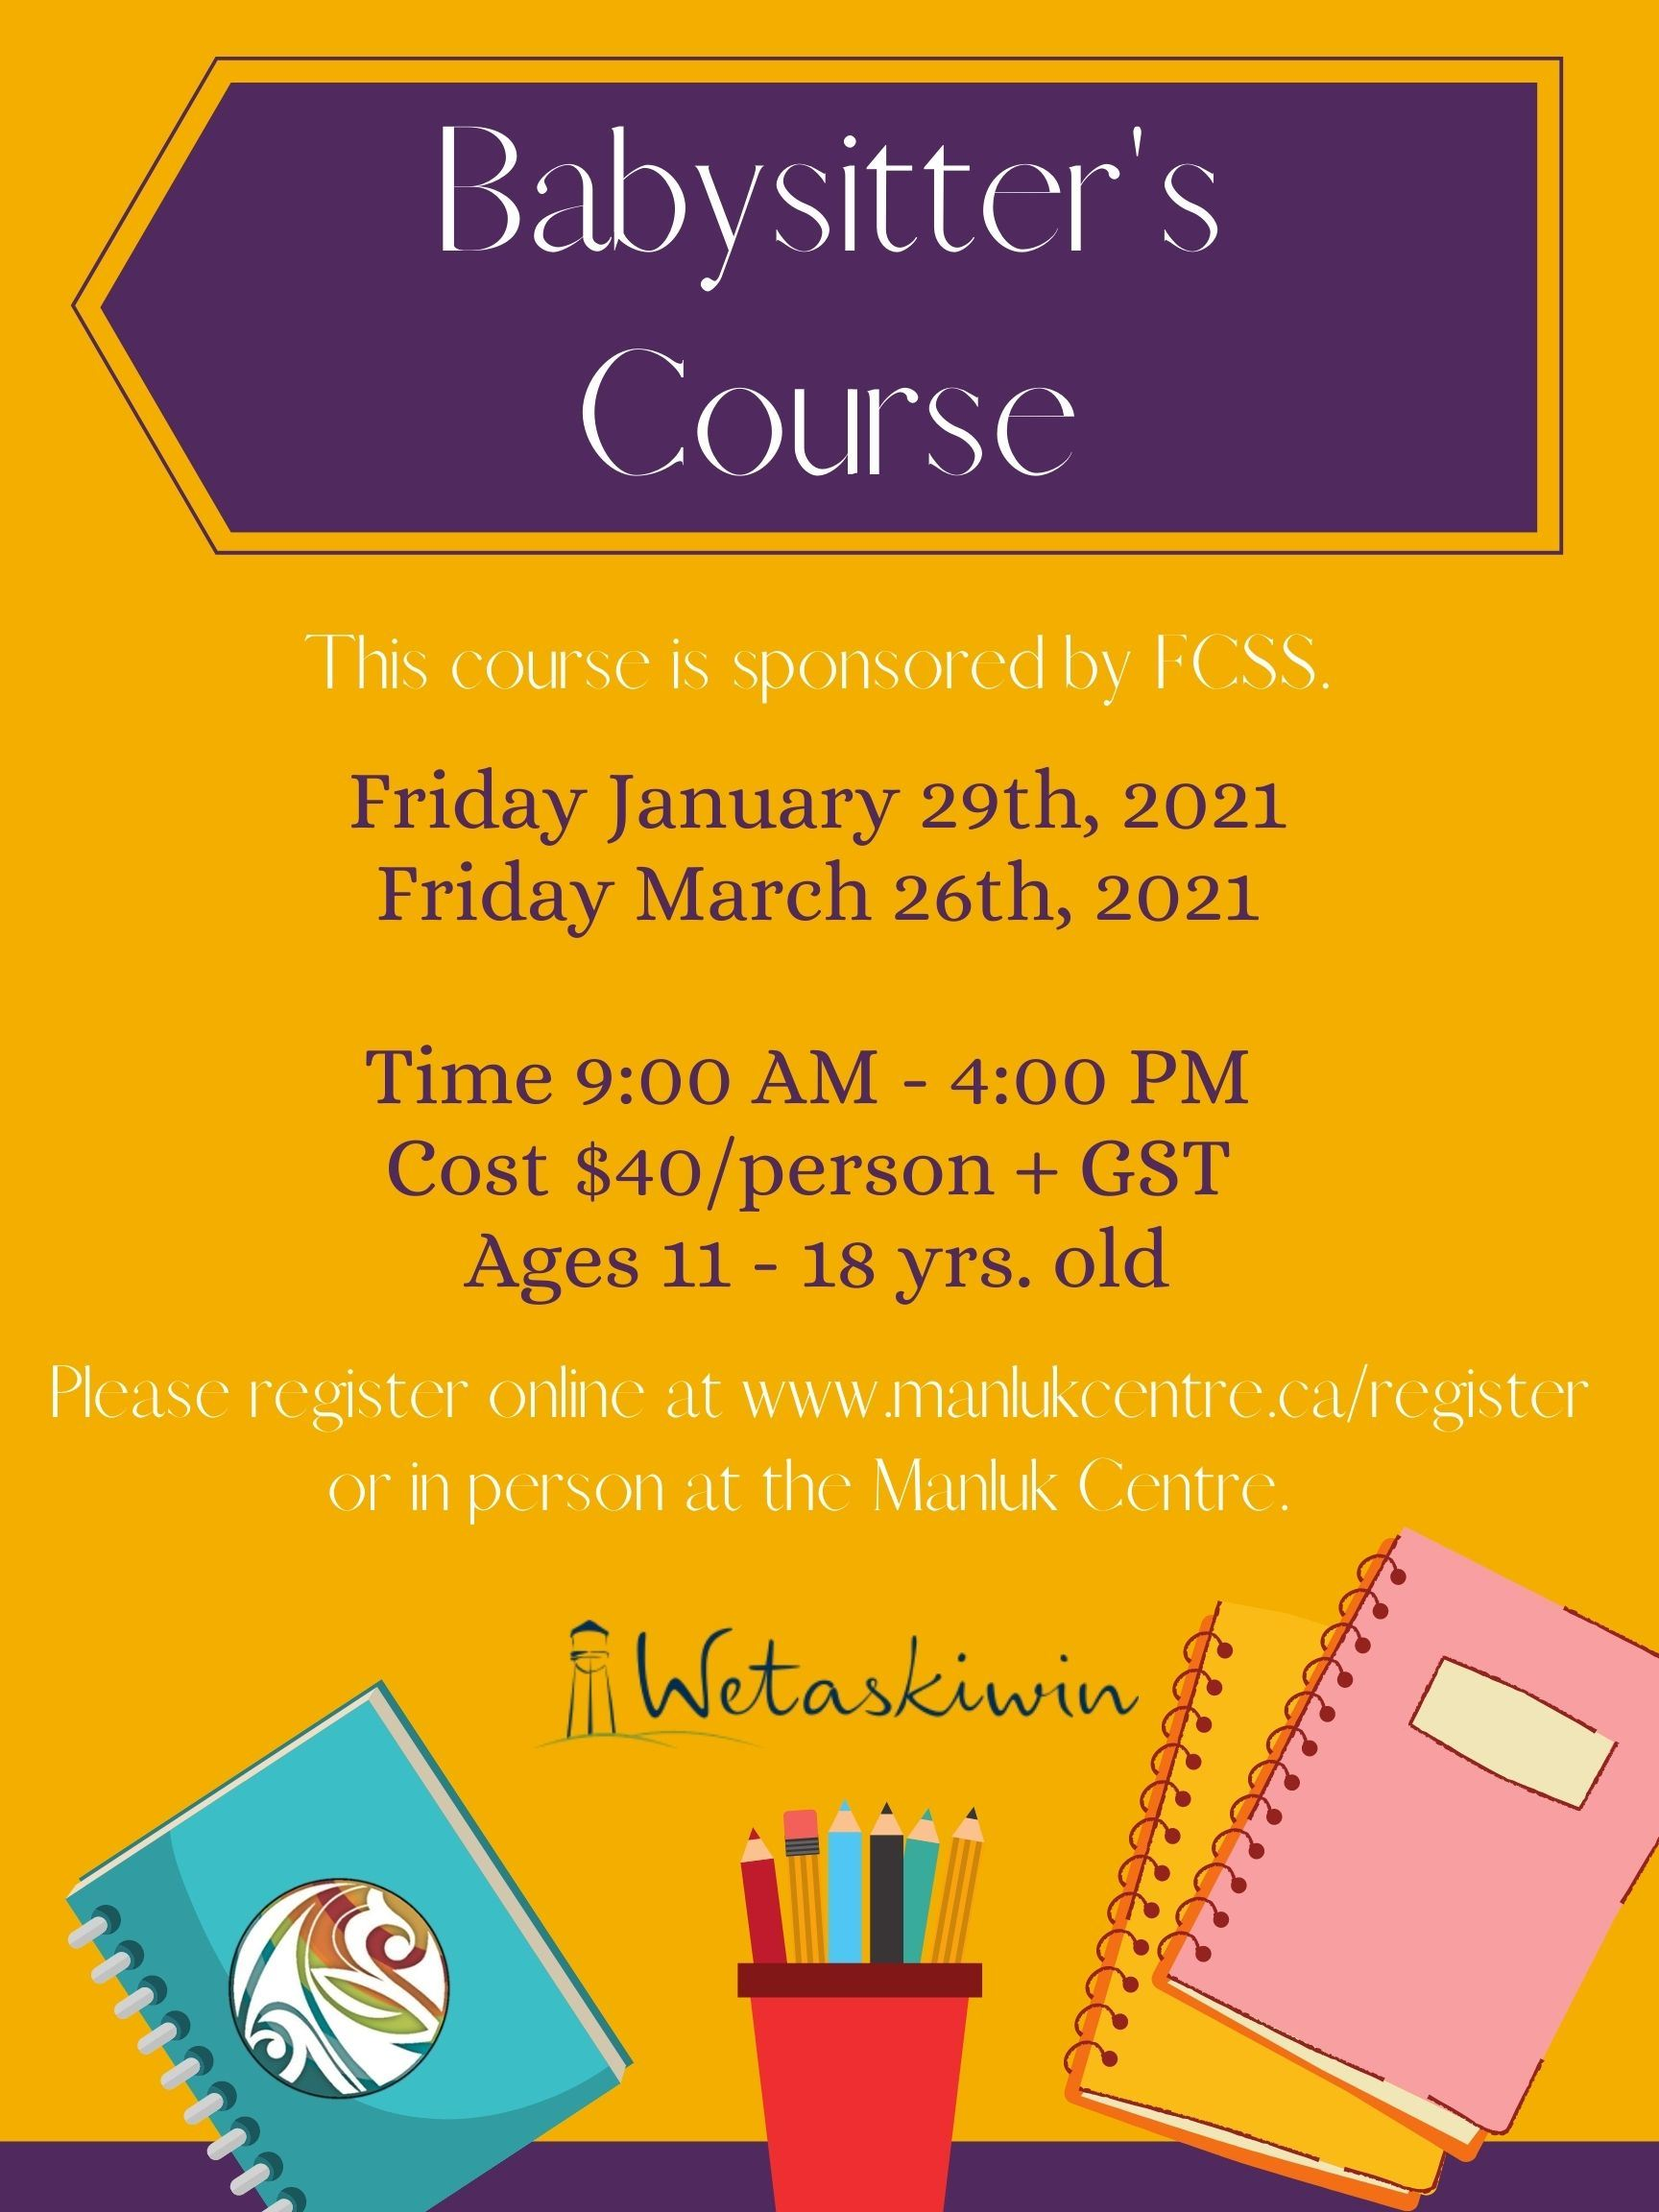 Babysitters Course Jan. 29th and Mar. 26th 2021 Poster